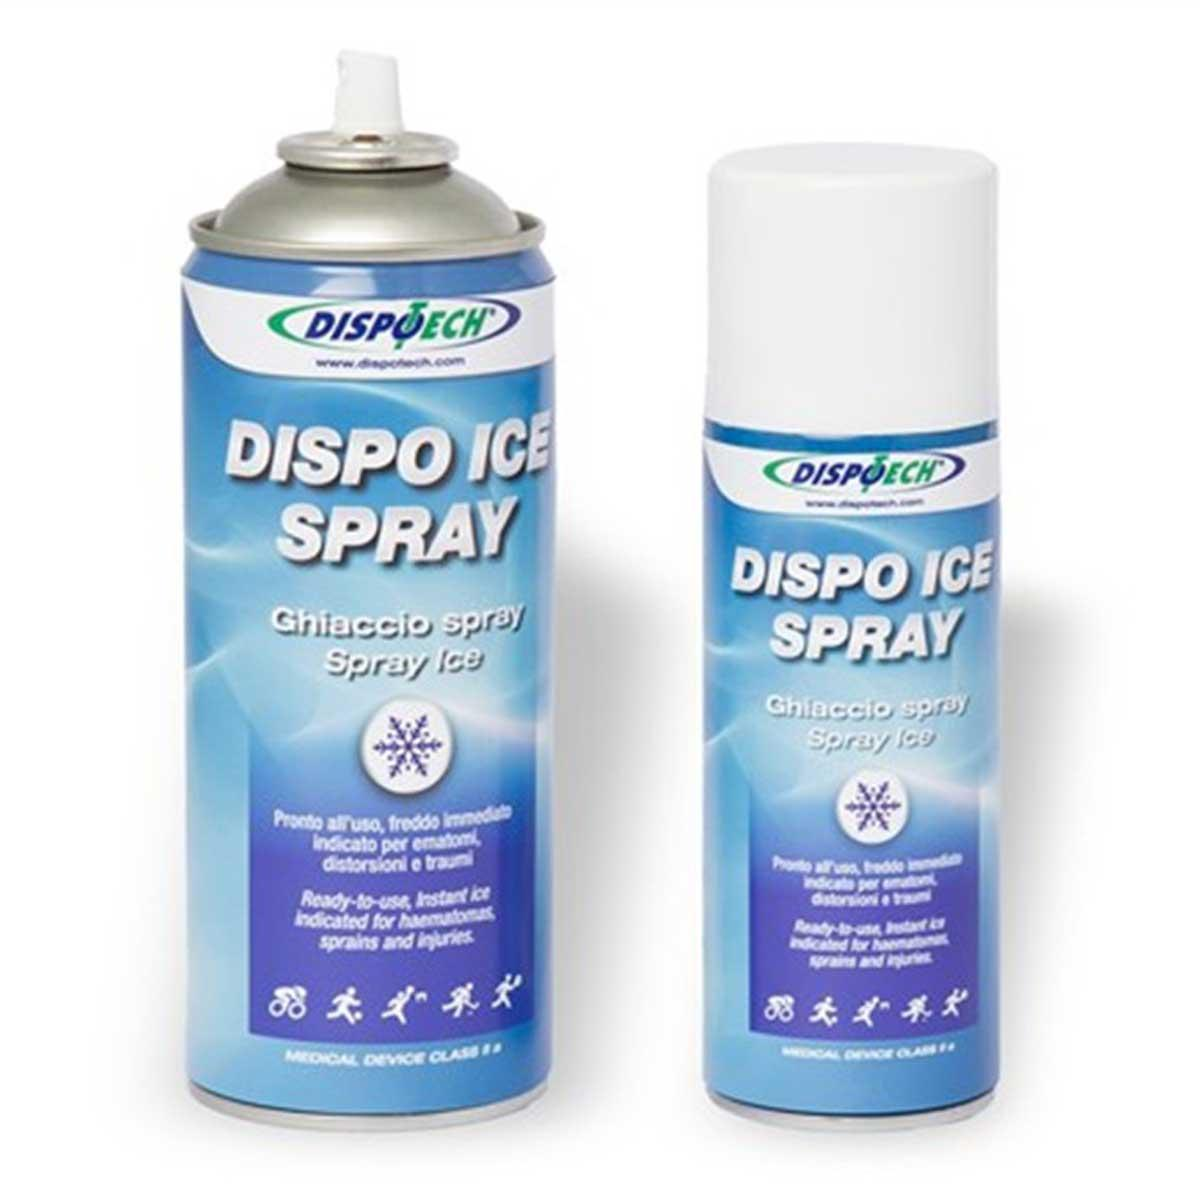 GHIACCHIO SPRAY 400ML